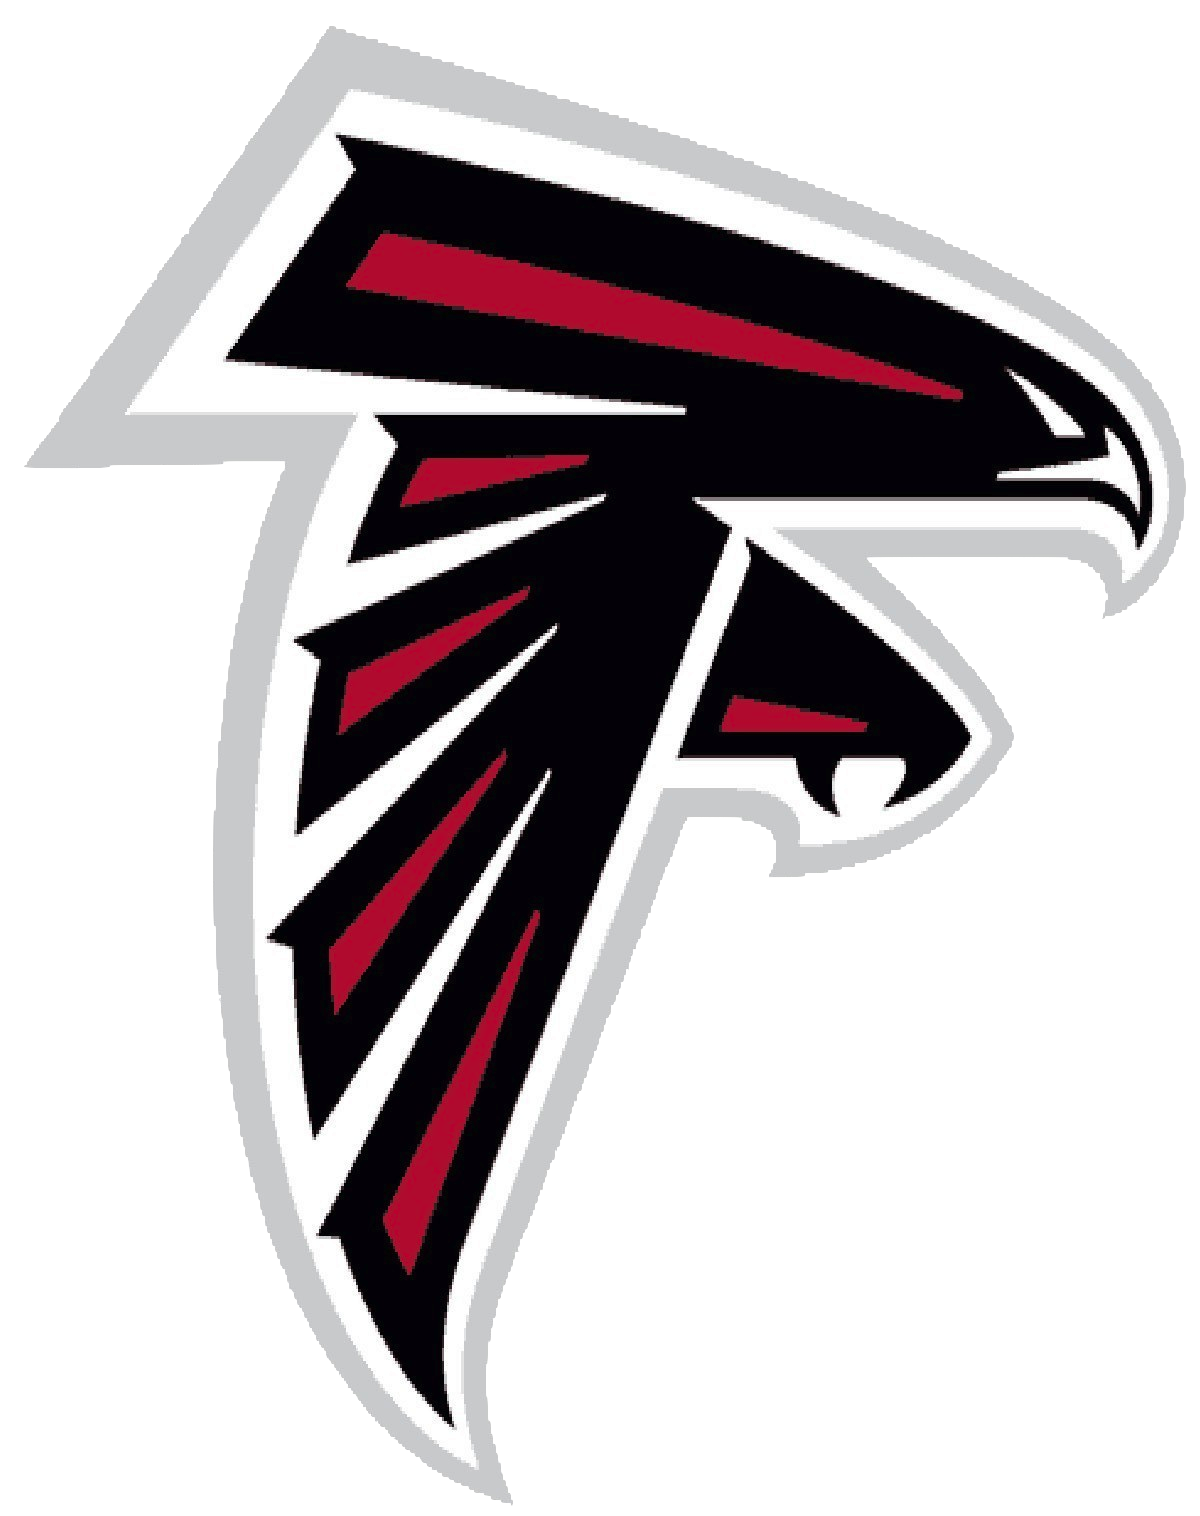 Atlanta Falcons Flying High The Knightly News Atlanta Falcons Atlanta Falcons Logo Atlanta Falcons Football